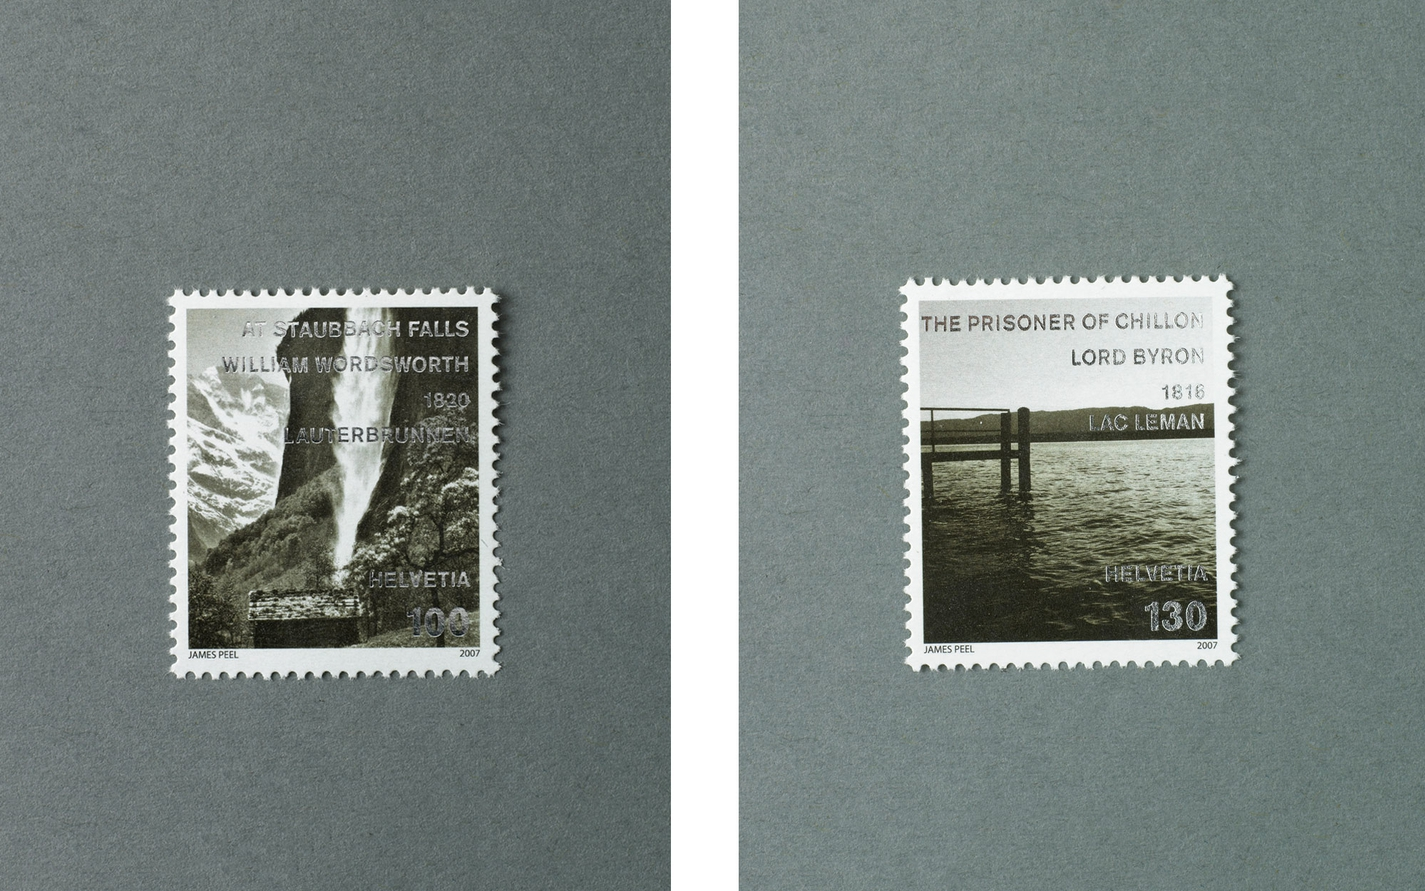 bob-design-swisspost-stamp6-26736.jpg